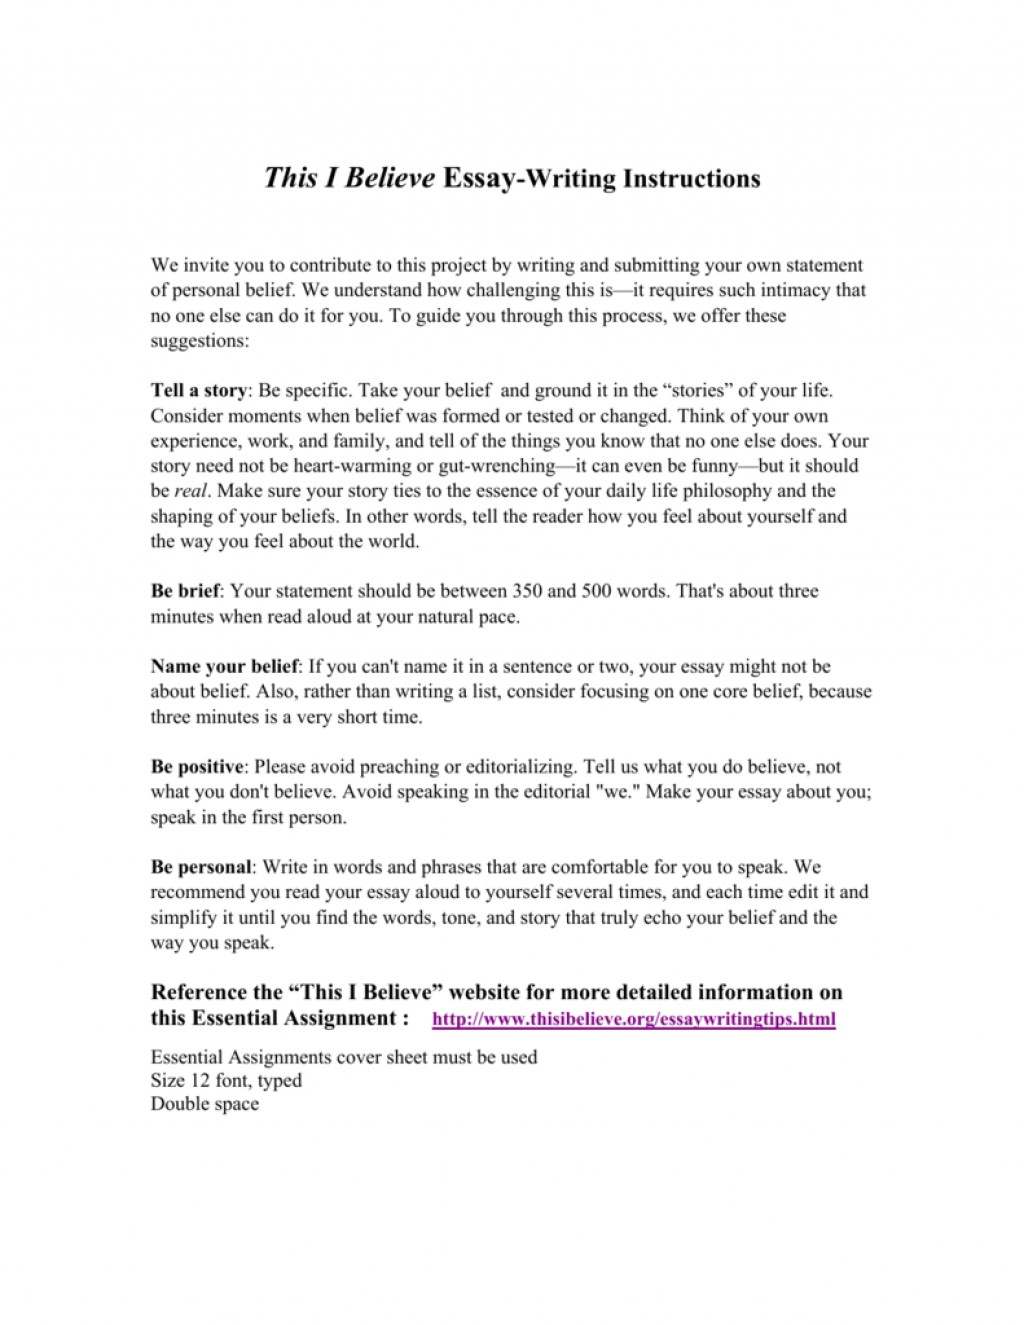 002 008807219 1 Essay Example This I Believe Impressive Outline Large